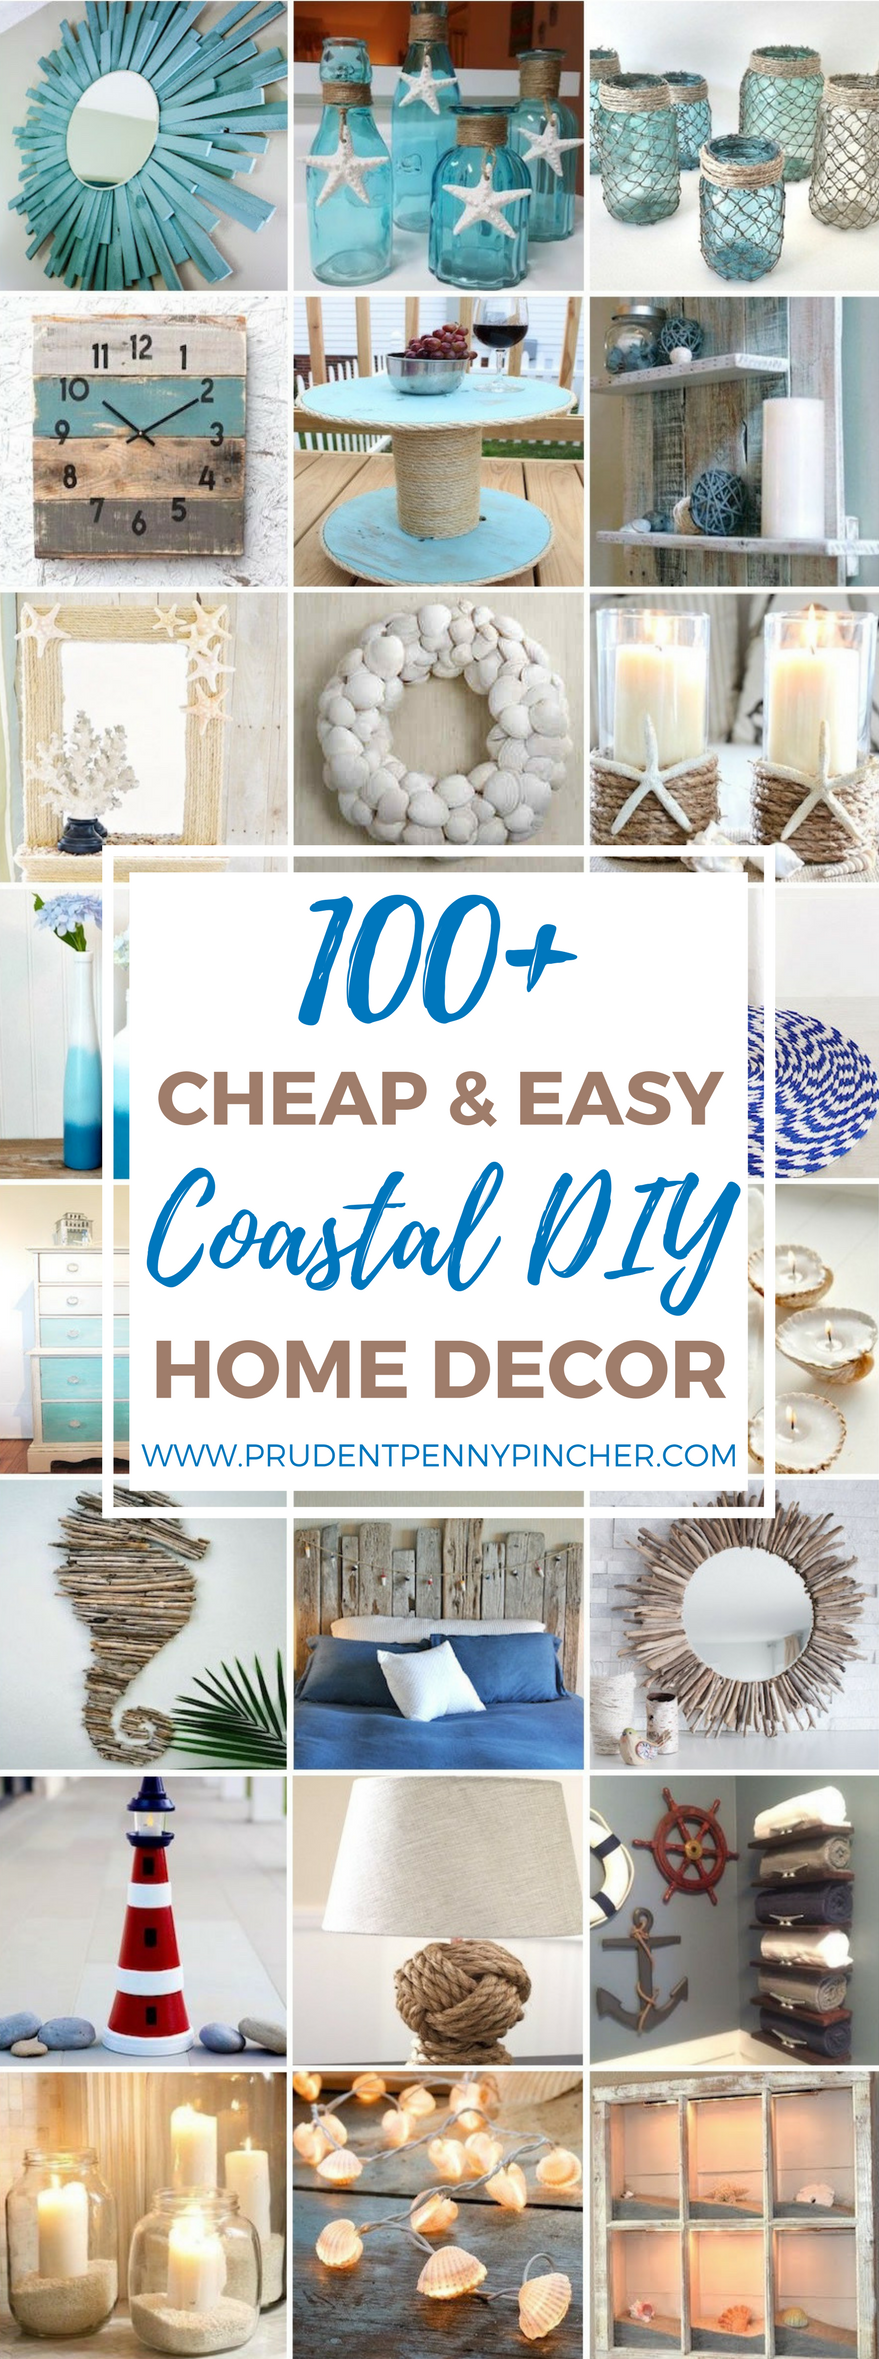 100 Cheap And Easy Coastal Diy Home Decor Ideas Prudent Home Decorators Catalog Best Ideas of Home Decor and Design [homedecoratorscatalog.us]